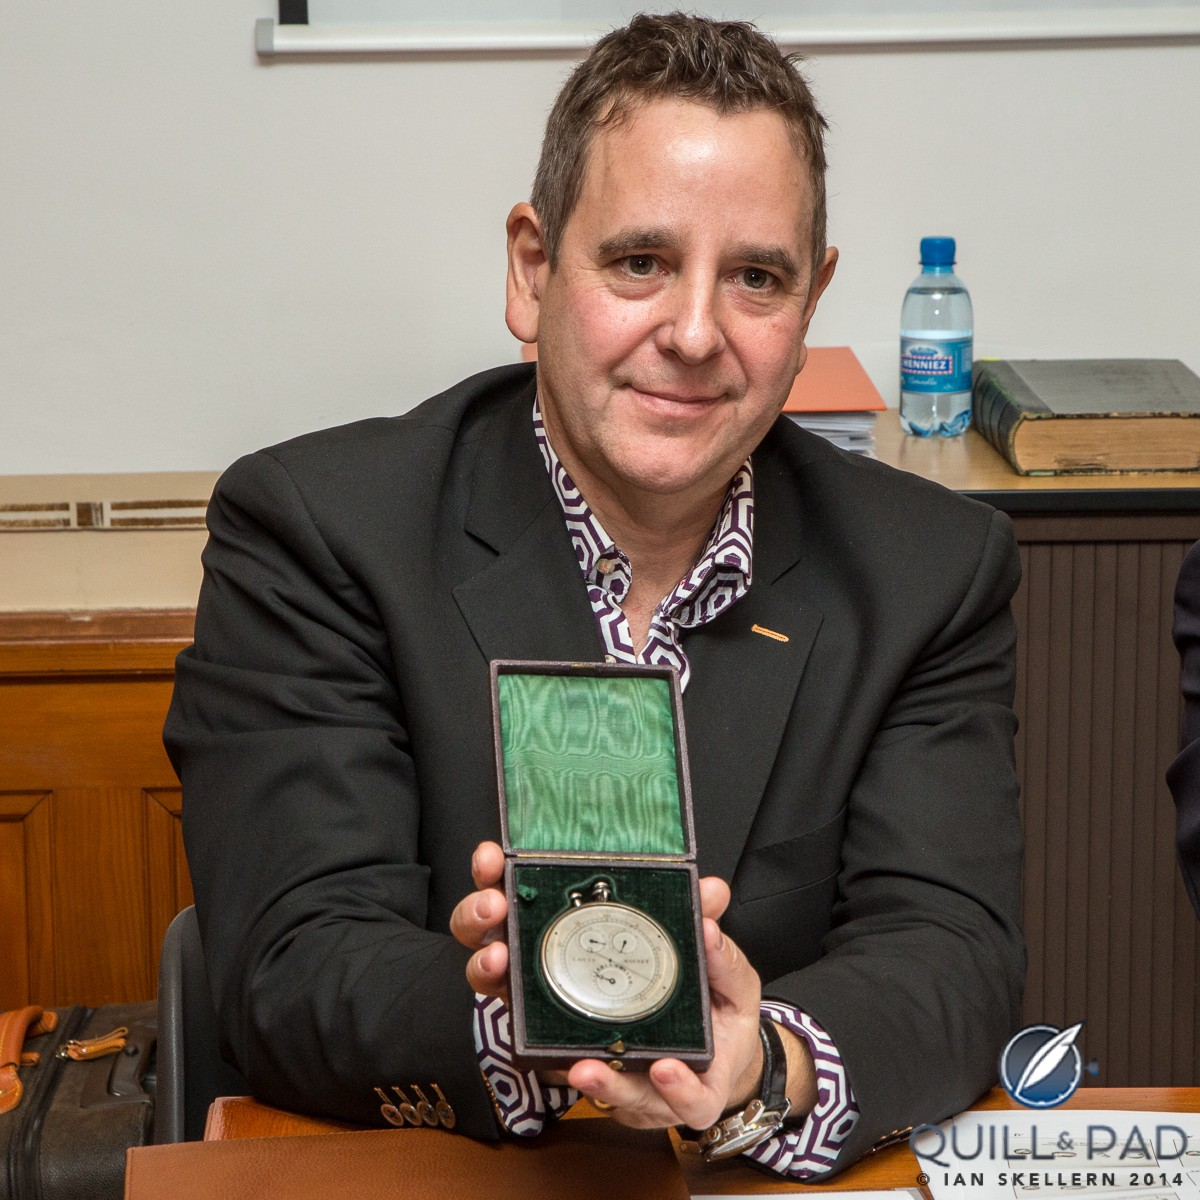 Jean-Marie Schaller, CEO and creative director of the modern Louis Moinet band, proudly holding the Compteur de Tierces